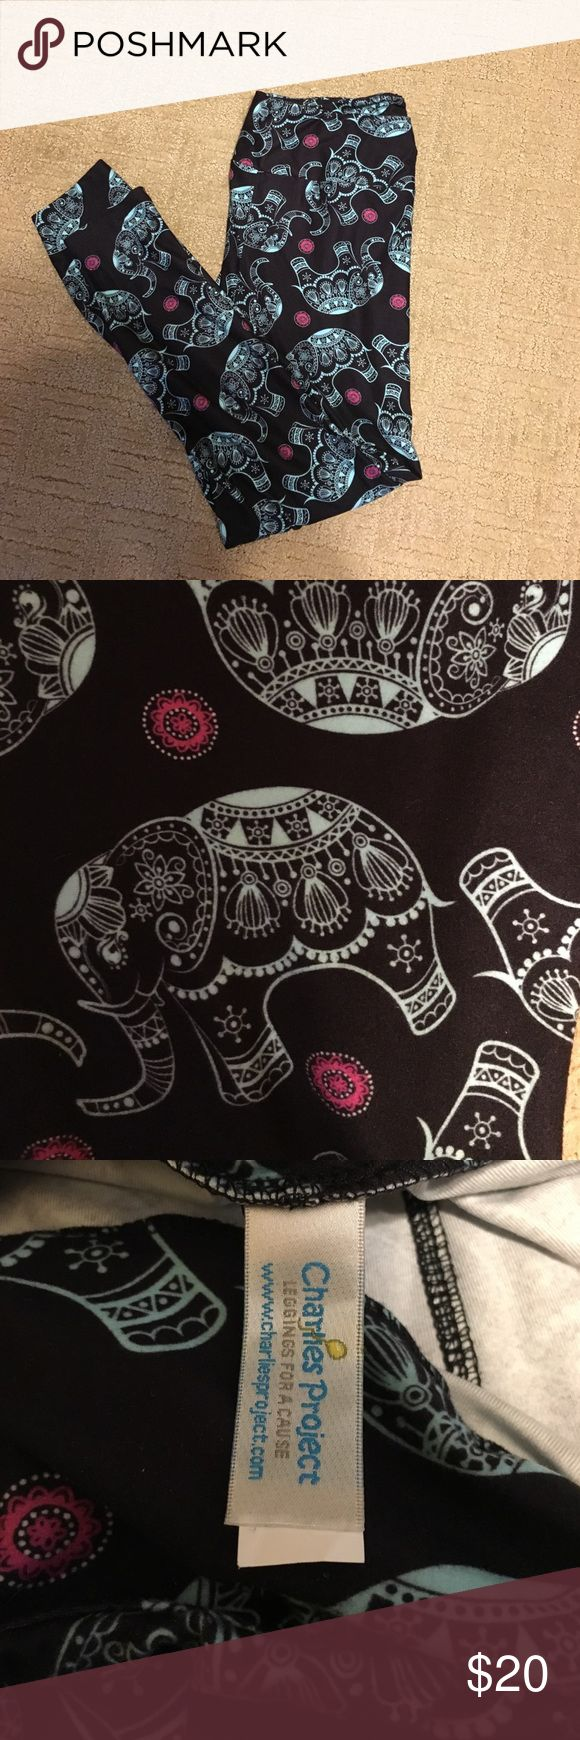 Elephant buttery soft leggings!!! NWOT Navy background leggings with elephants on them!!! They feel lucky like buttah!!! NWOT TC (tall and curvy) Charlie's  project brand Charlies Project Pants Leggings